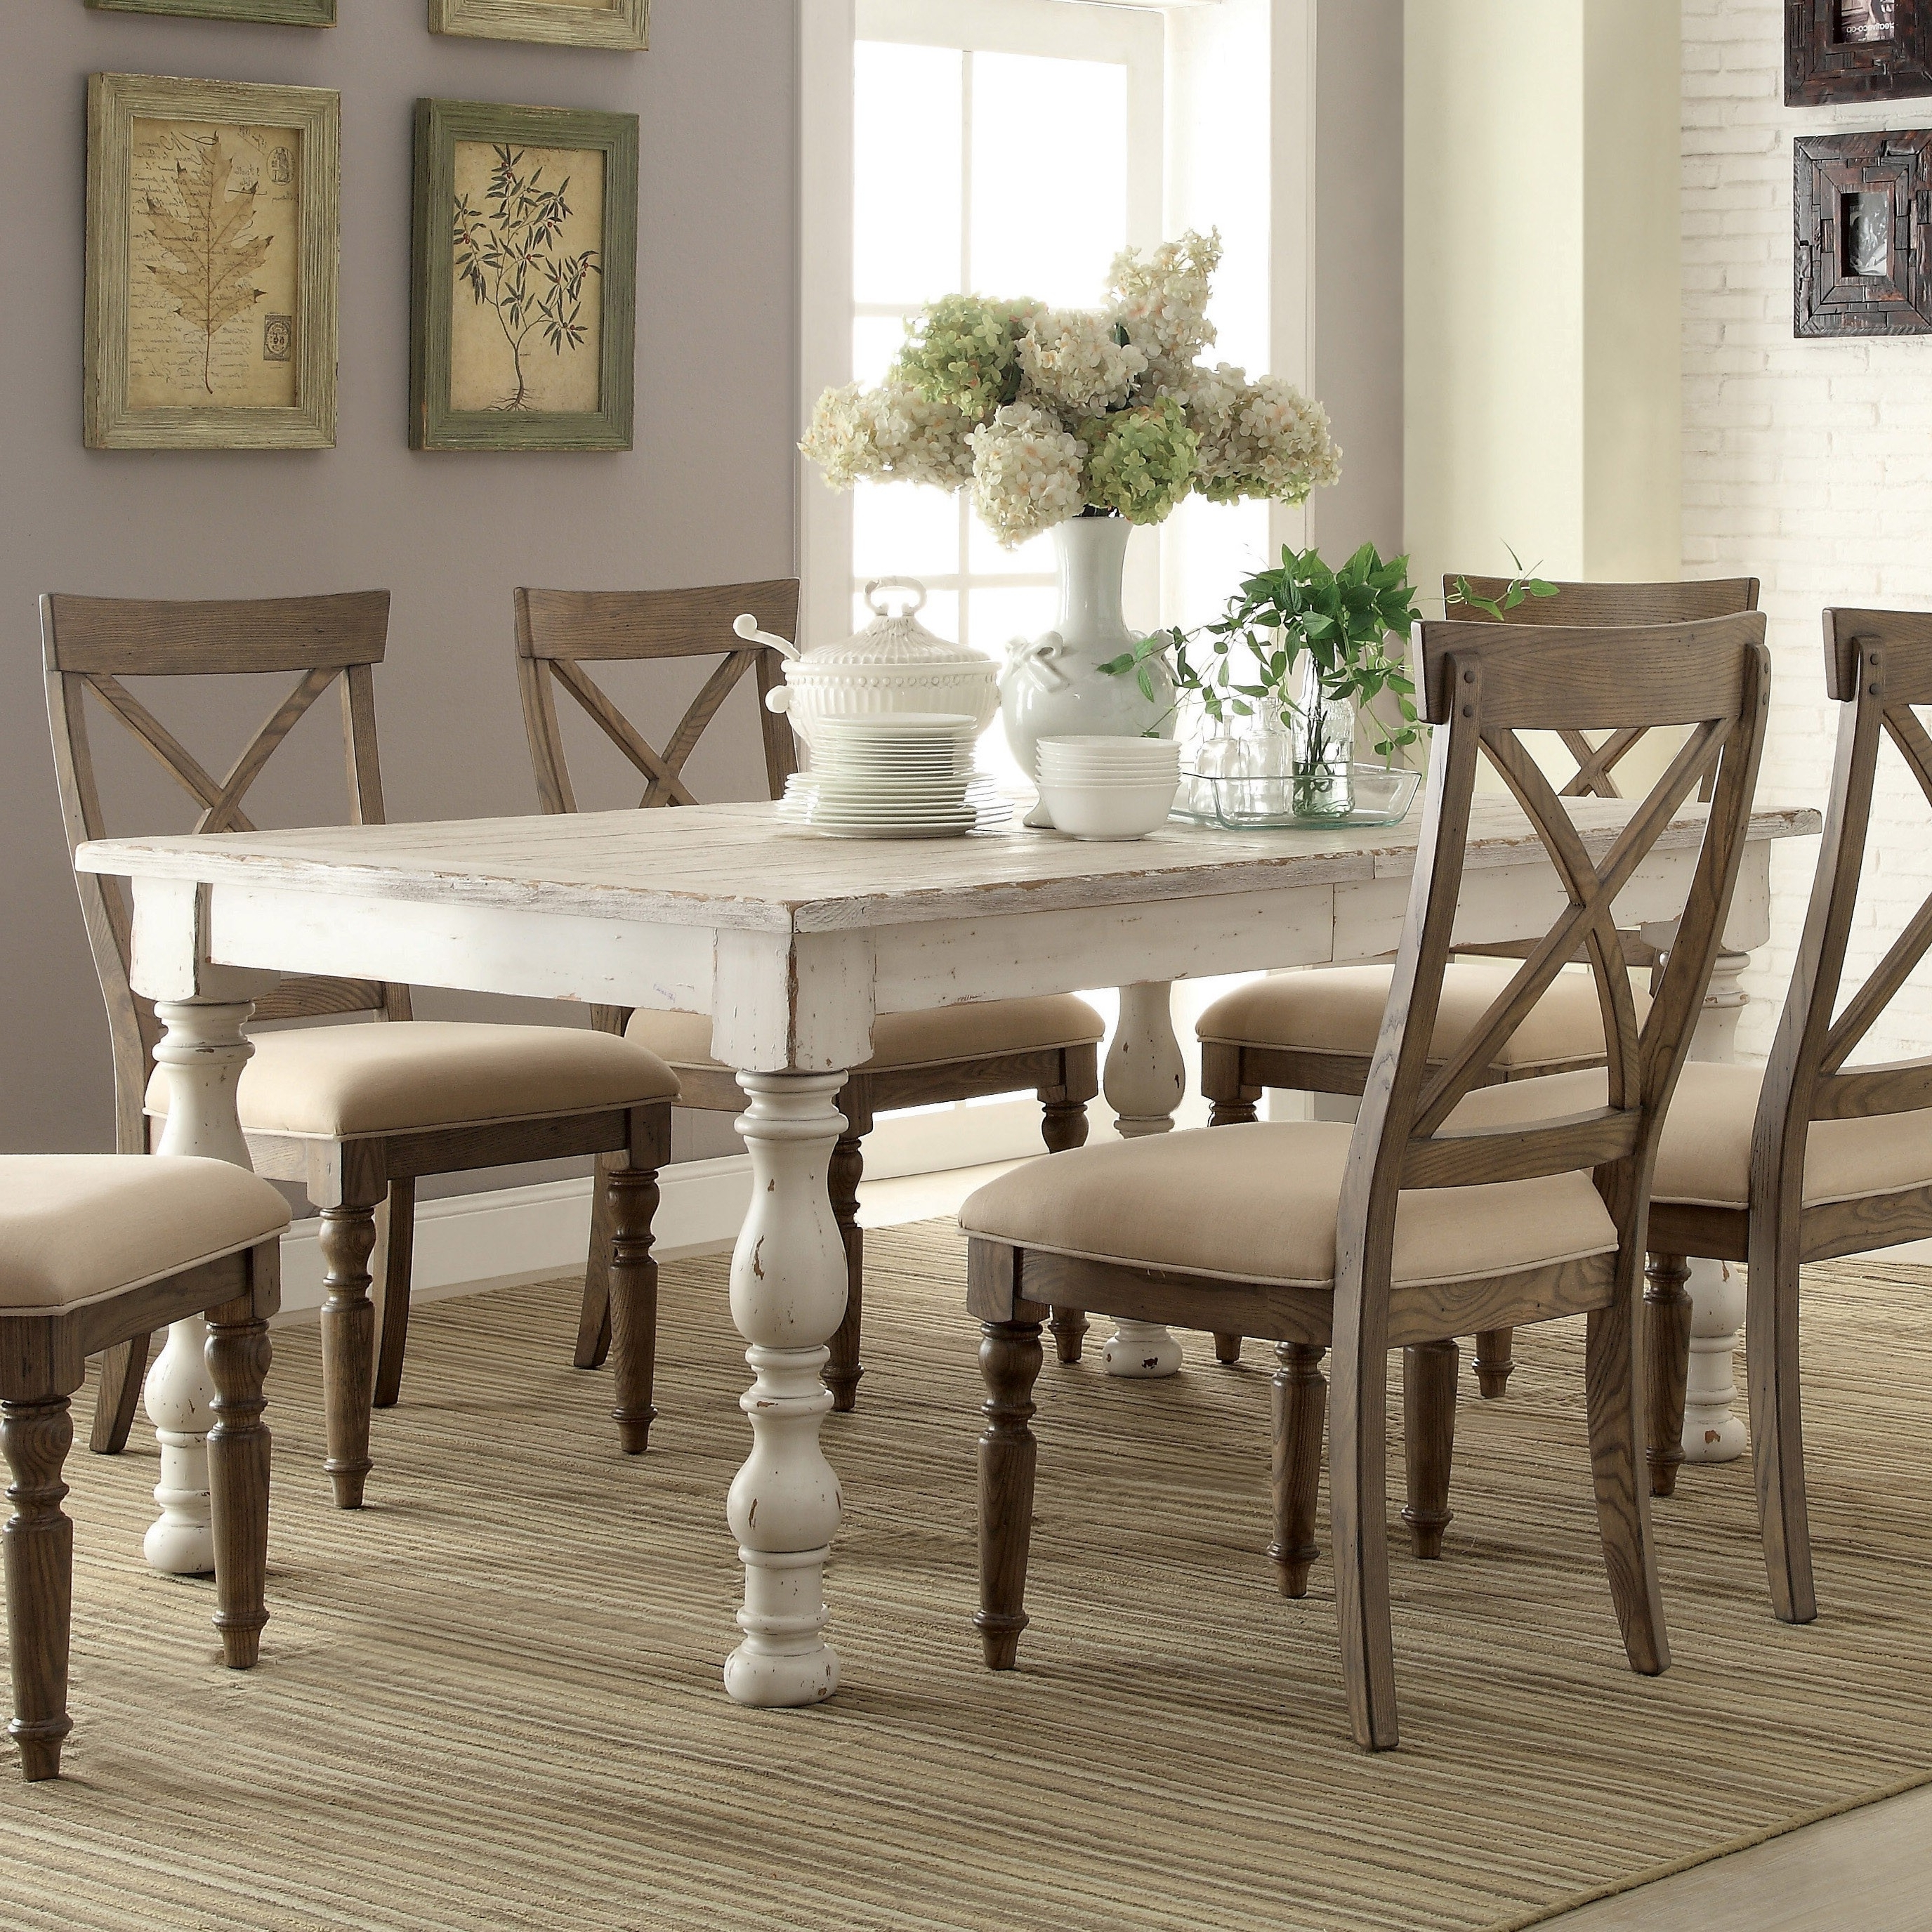 Famous White Dining Tables Inside Aberdeen Wood Rectangular Dining Table In Weathered Worn White (View 7 of 25)